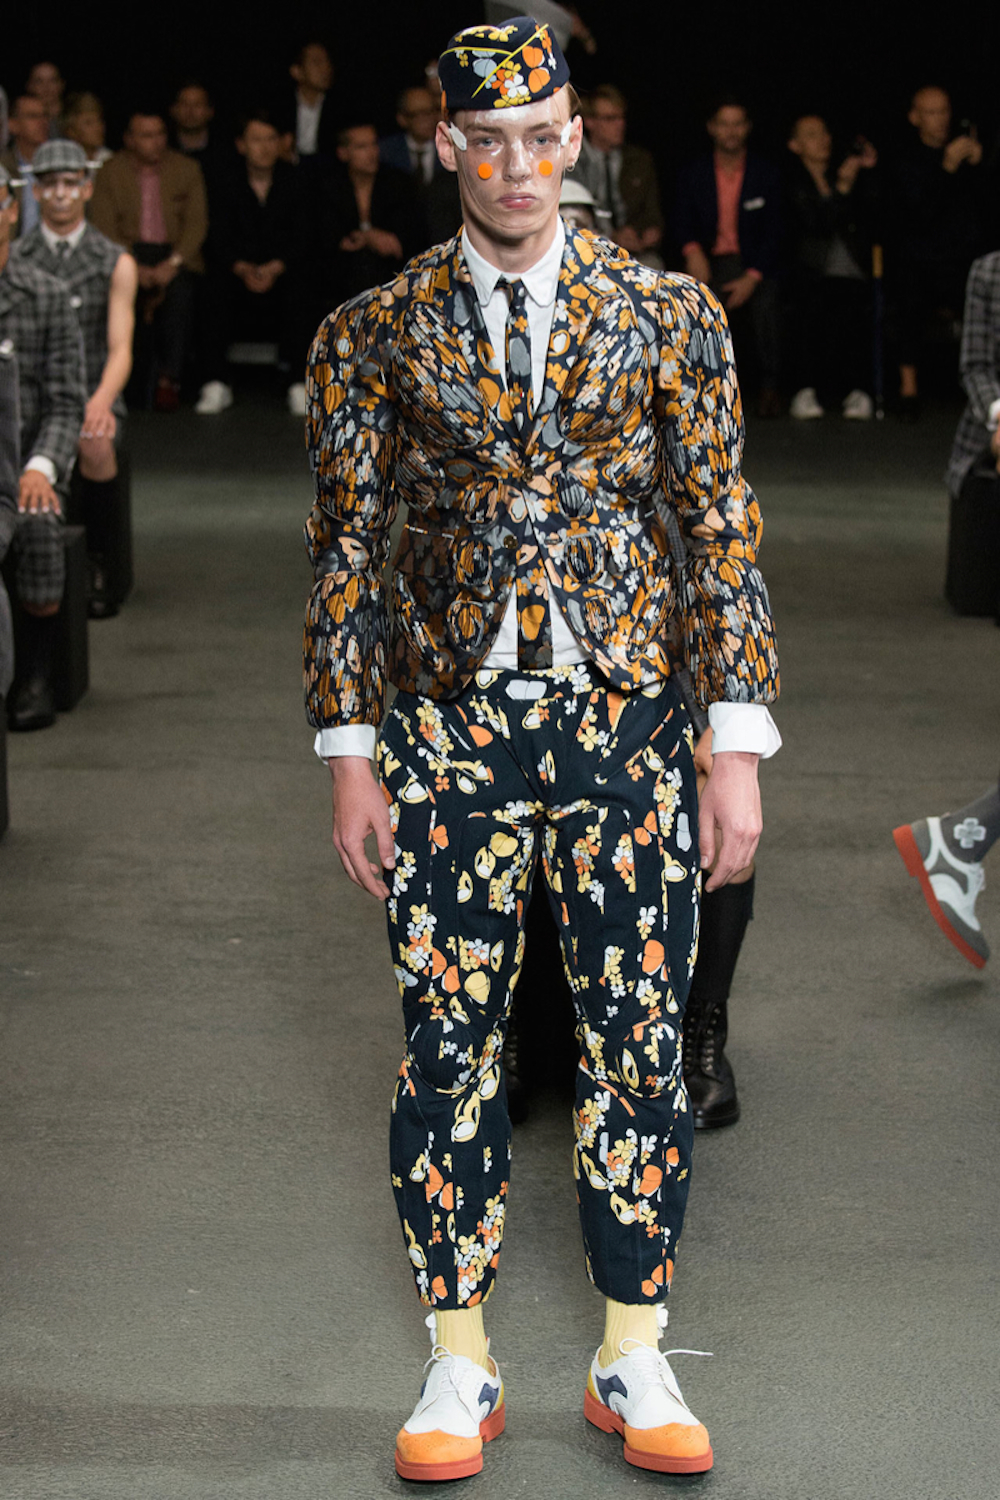 Thom-Browne-2015-Spring-Summer-Collection-Paris-Fashion-Week-019